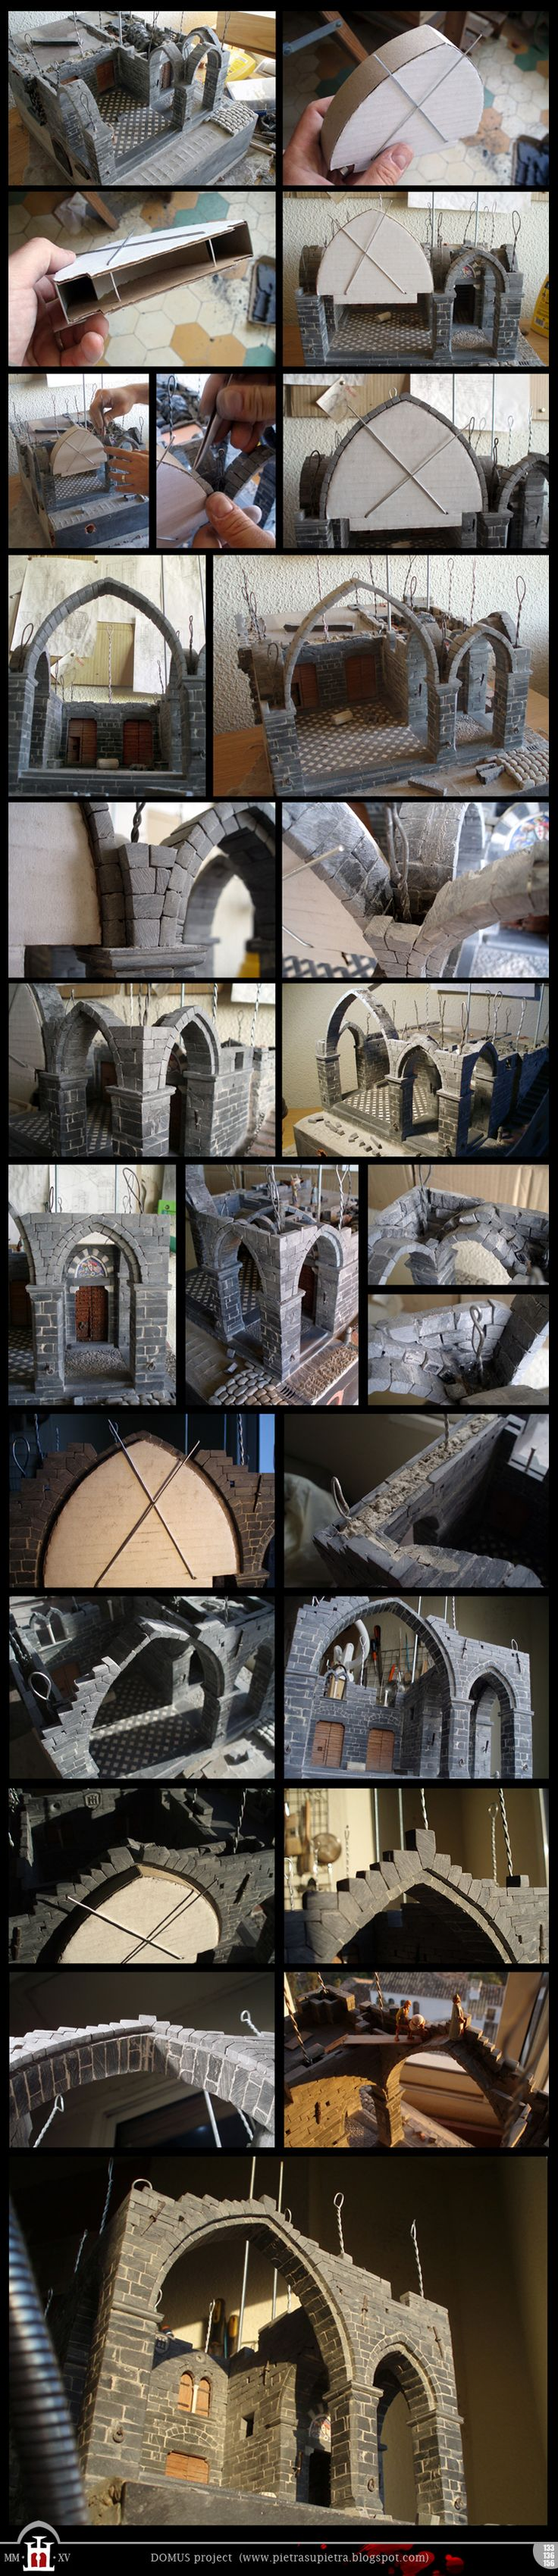 Domus project 133-136-156: Main arch of the loggia